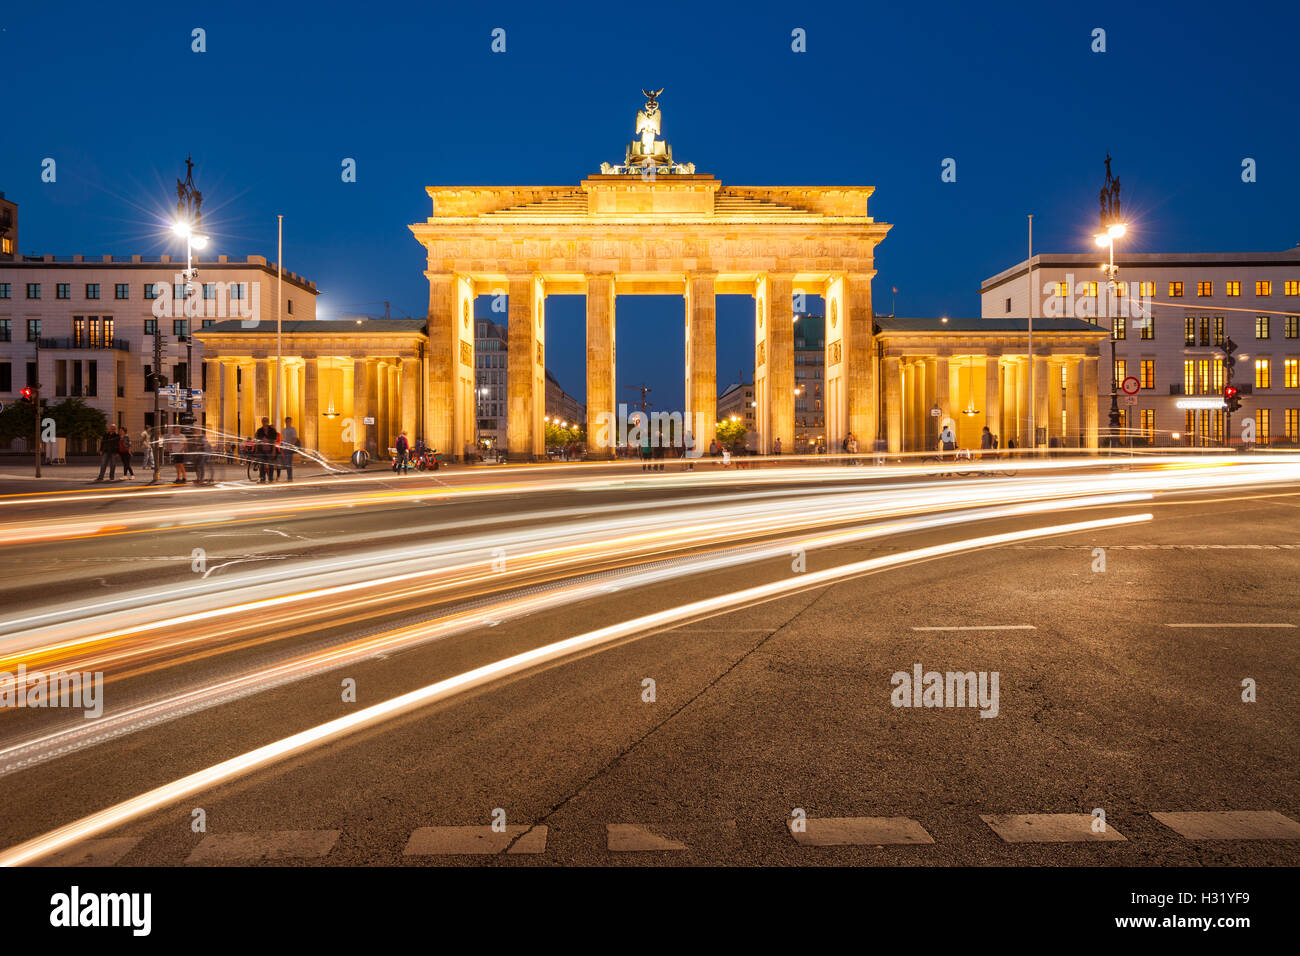 Berlin's Brandenburg Gate at twilight with speeding traffic light trails - Stock Image